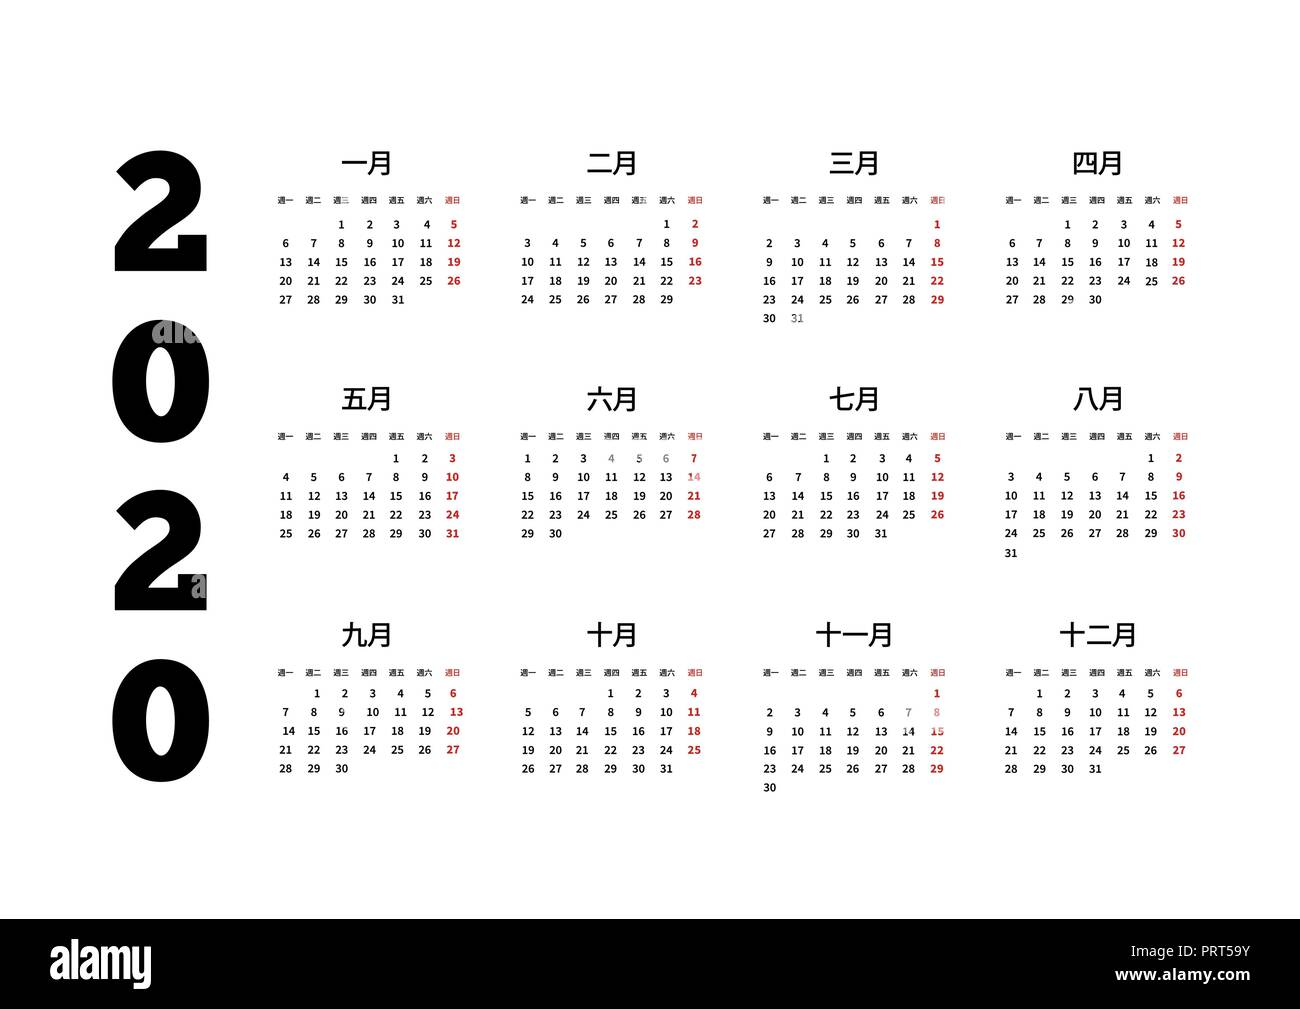 China 2020 Calendar 2020 year simple calendar on chinese language, isolated on white